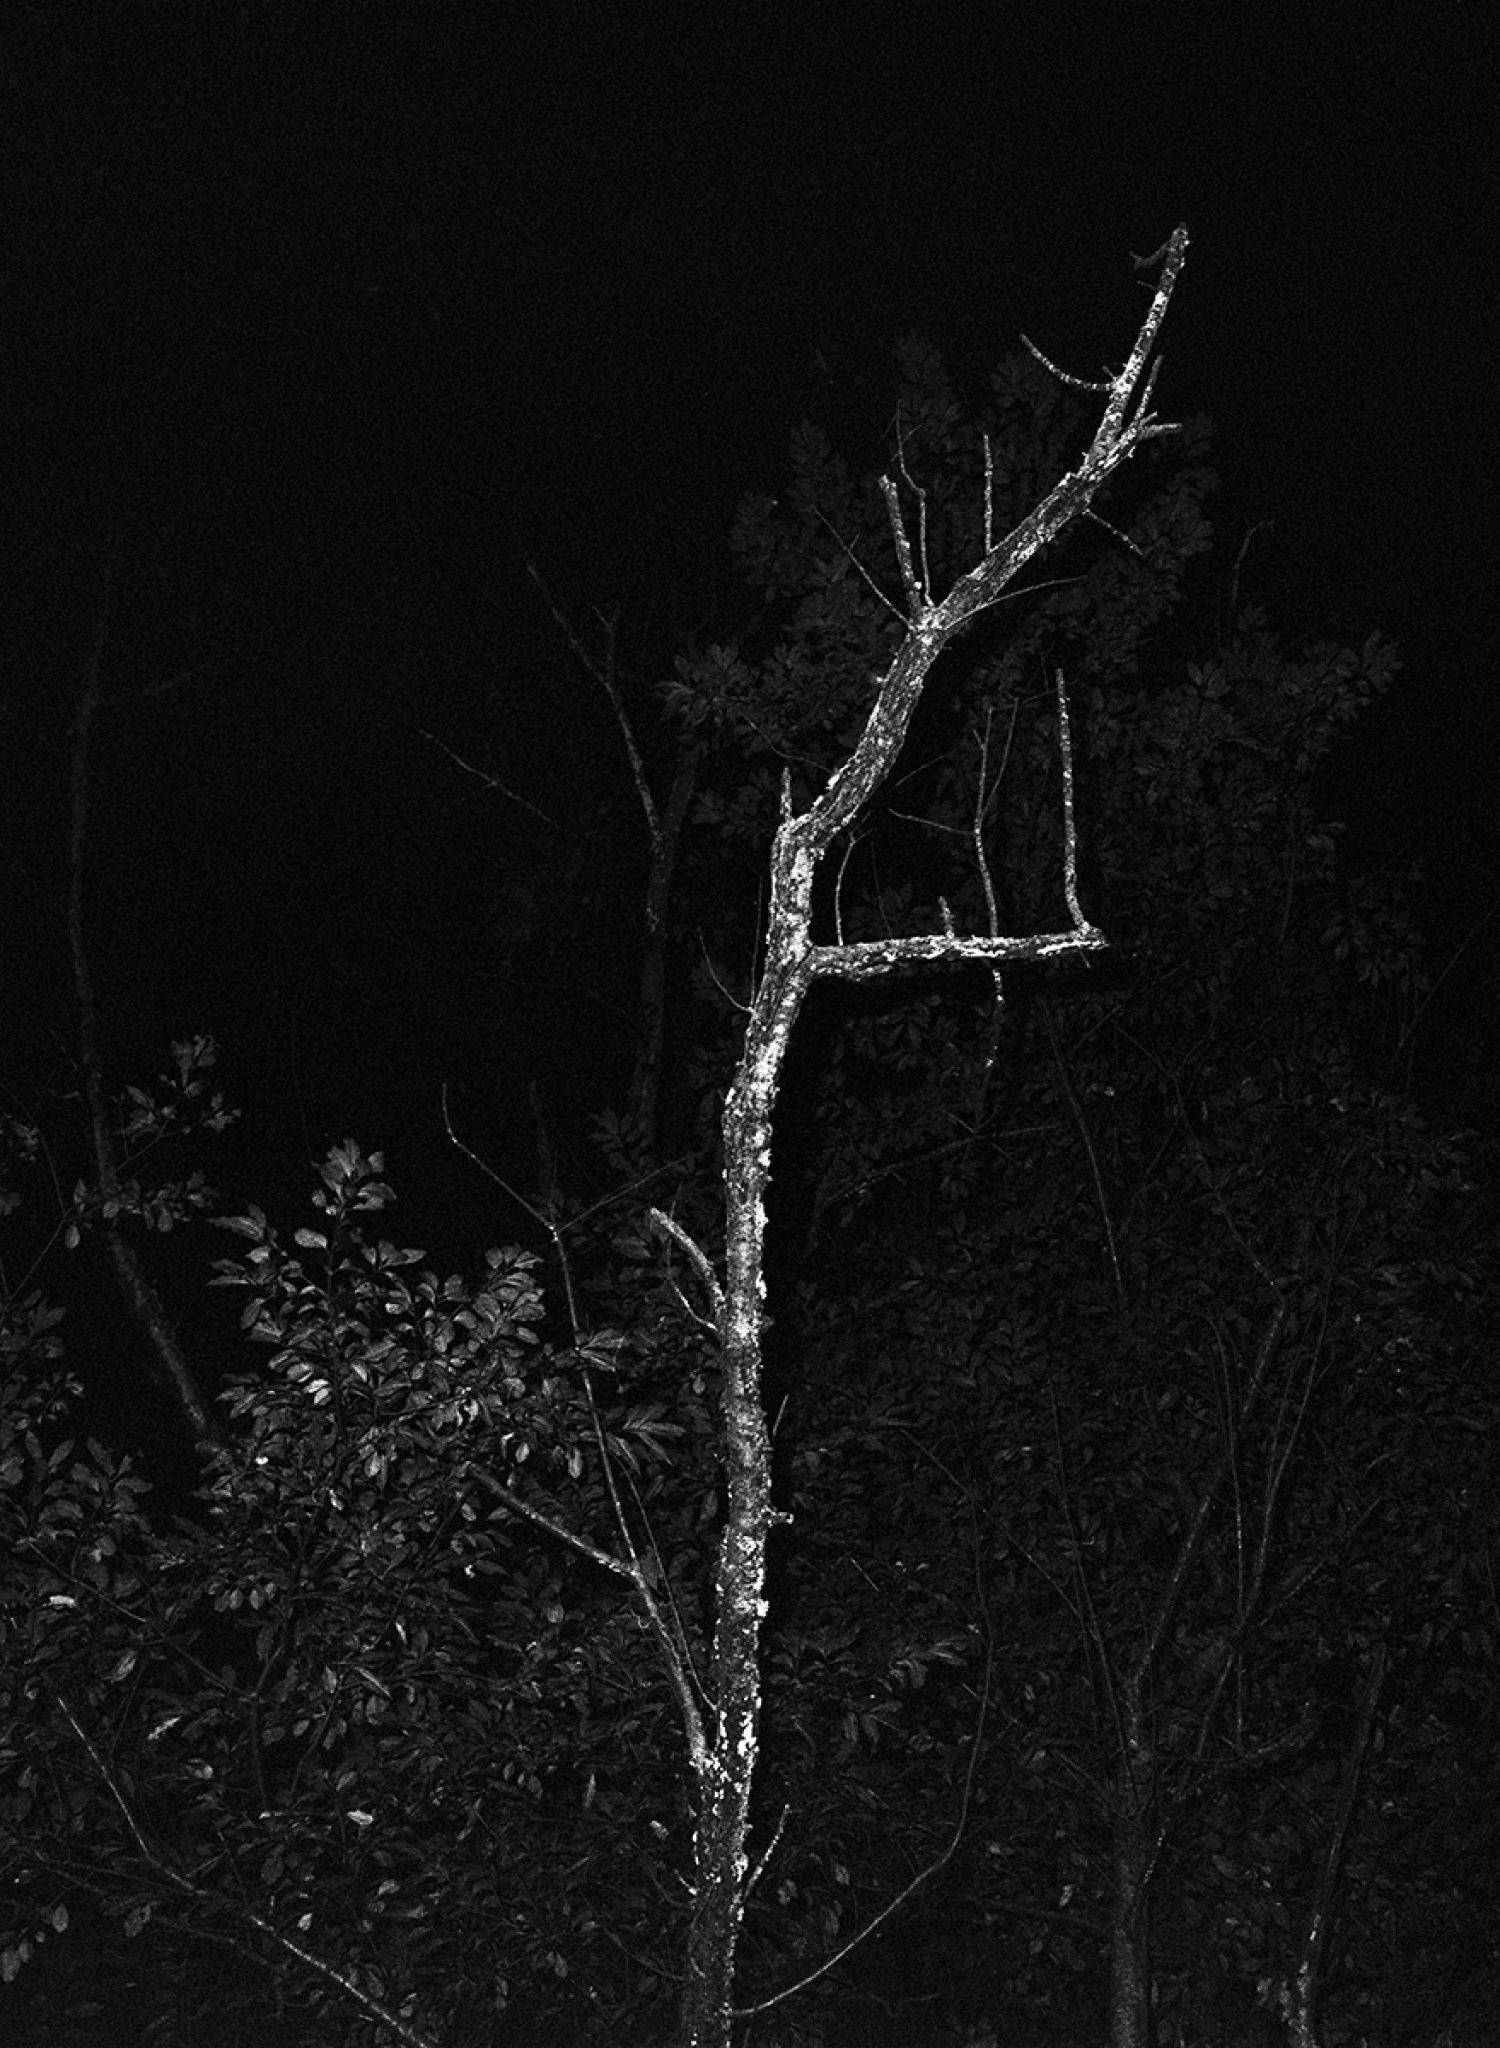 Tree #3, 2018, Archival inkjet print from a scanned negative